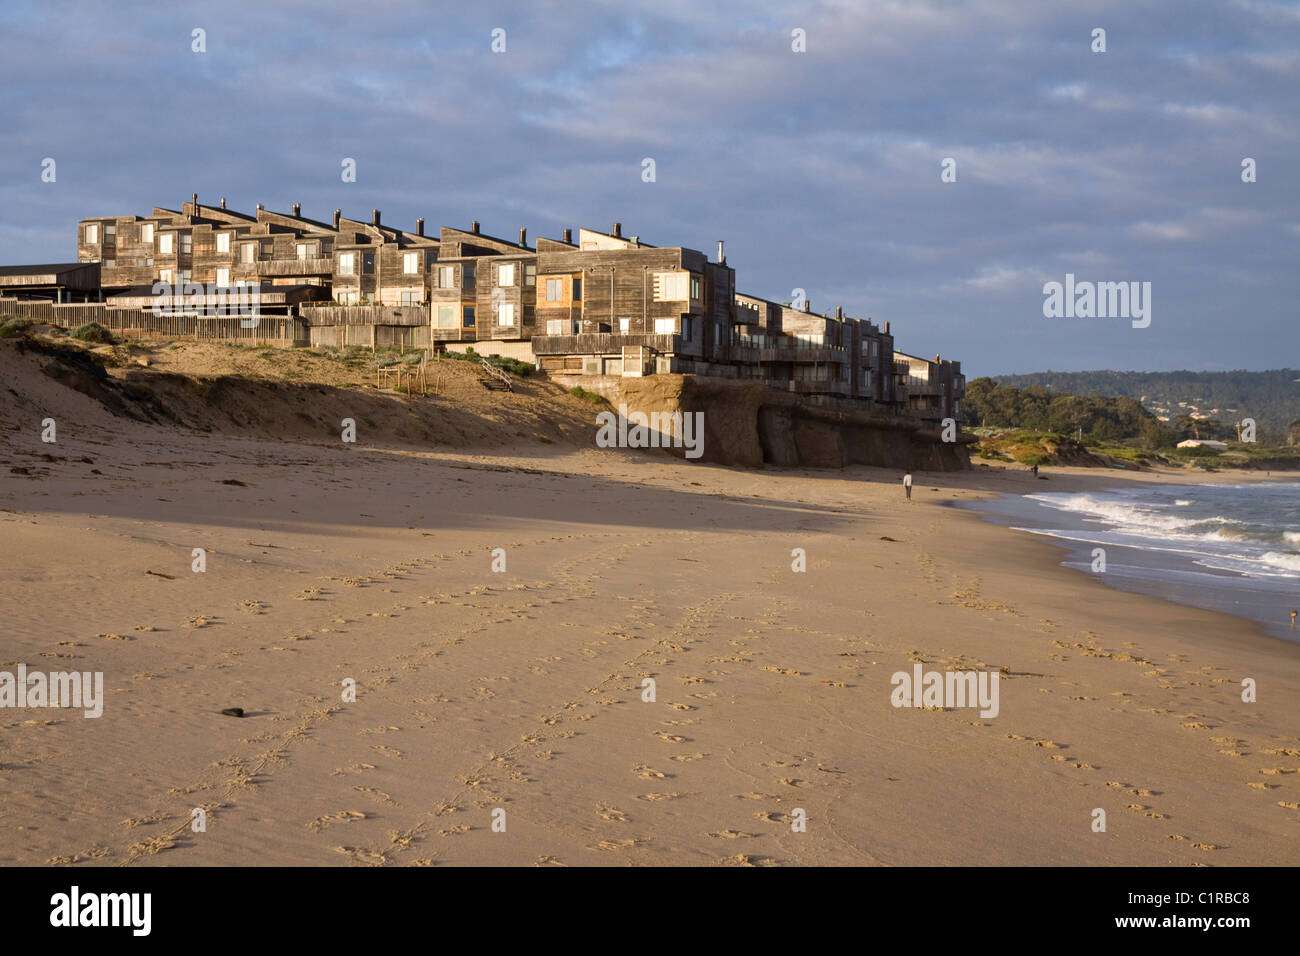 Climate Change. Beachfront condo development being undermined by rising ocean levels, Monterey Bay, California, - Stock Image